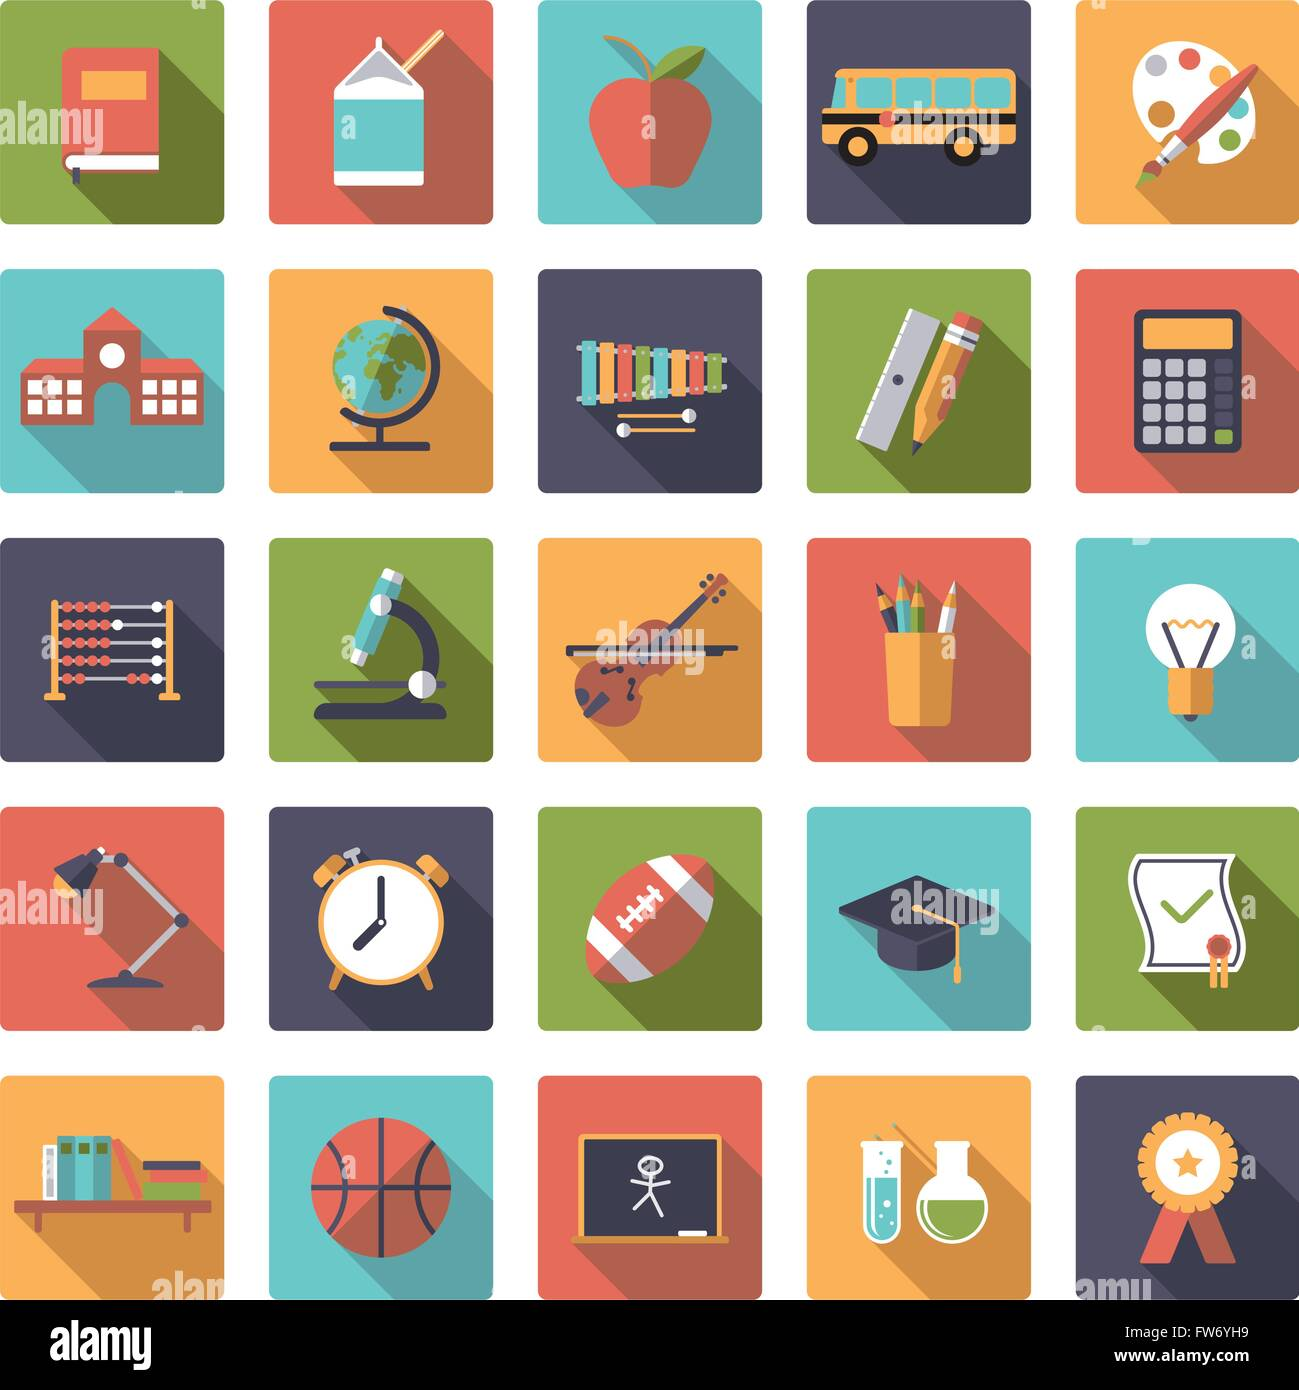 Education, school, college and university related icons in rounded squares, flat design, long shadow - Stock Image